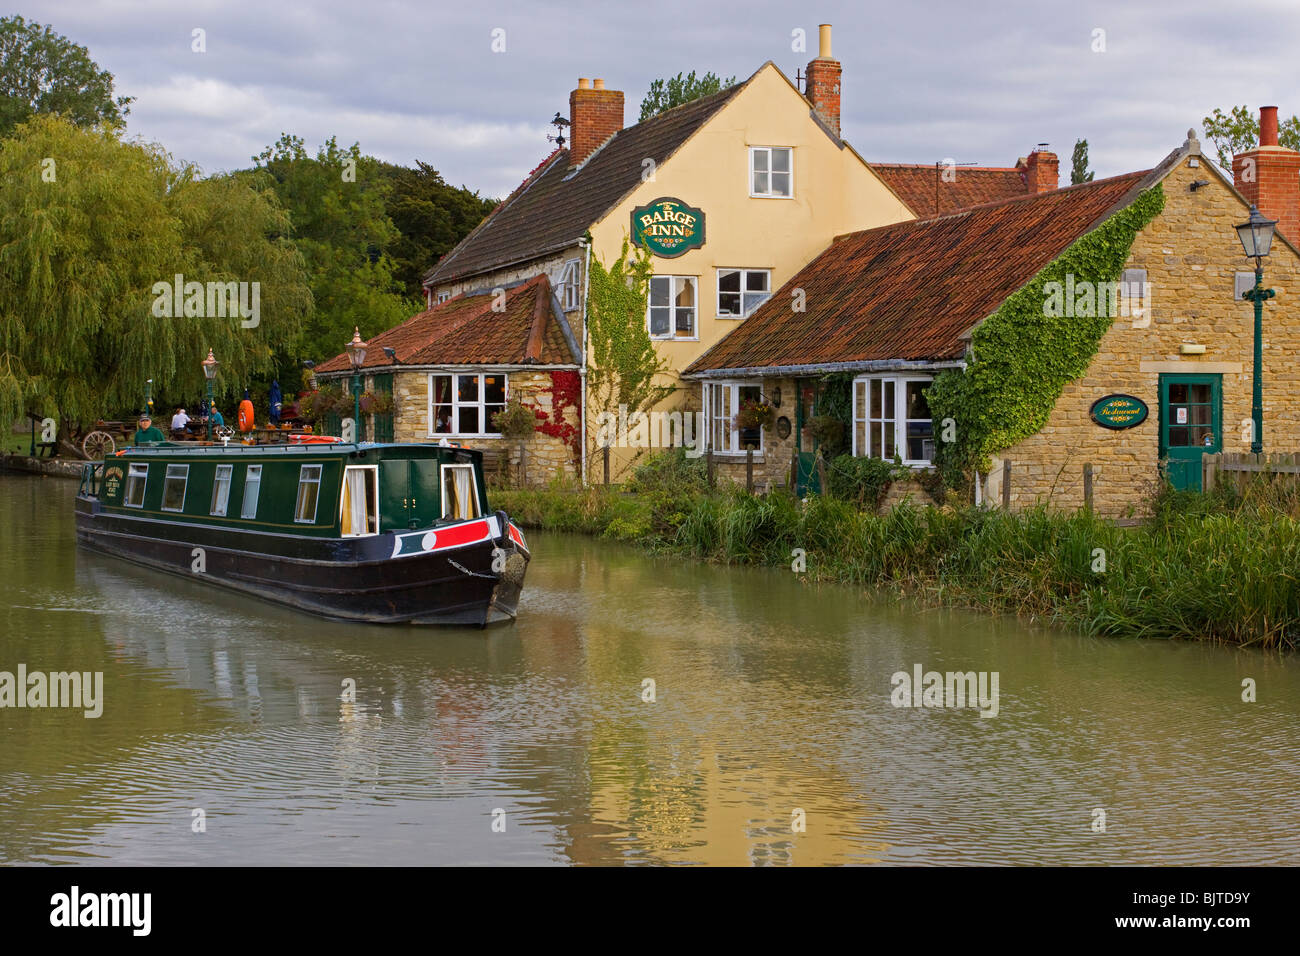 The Barge Inn Kennet & Avon canal - Stock Image